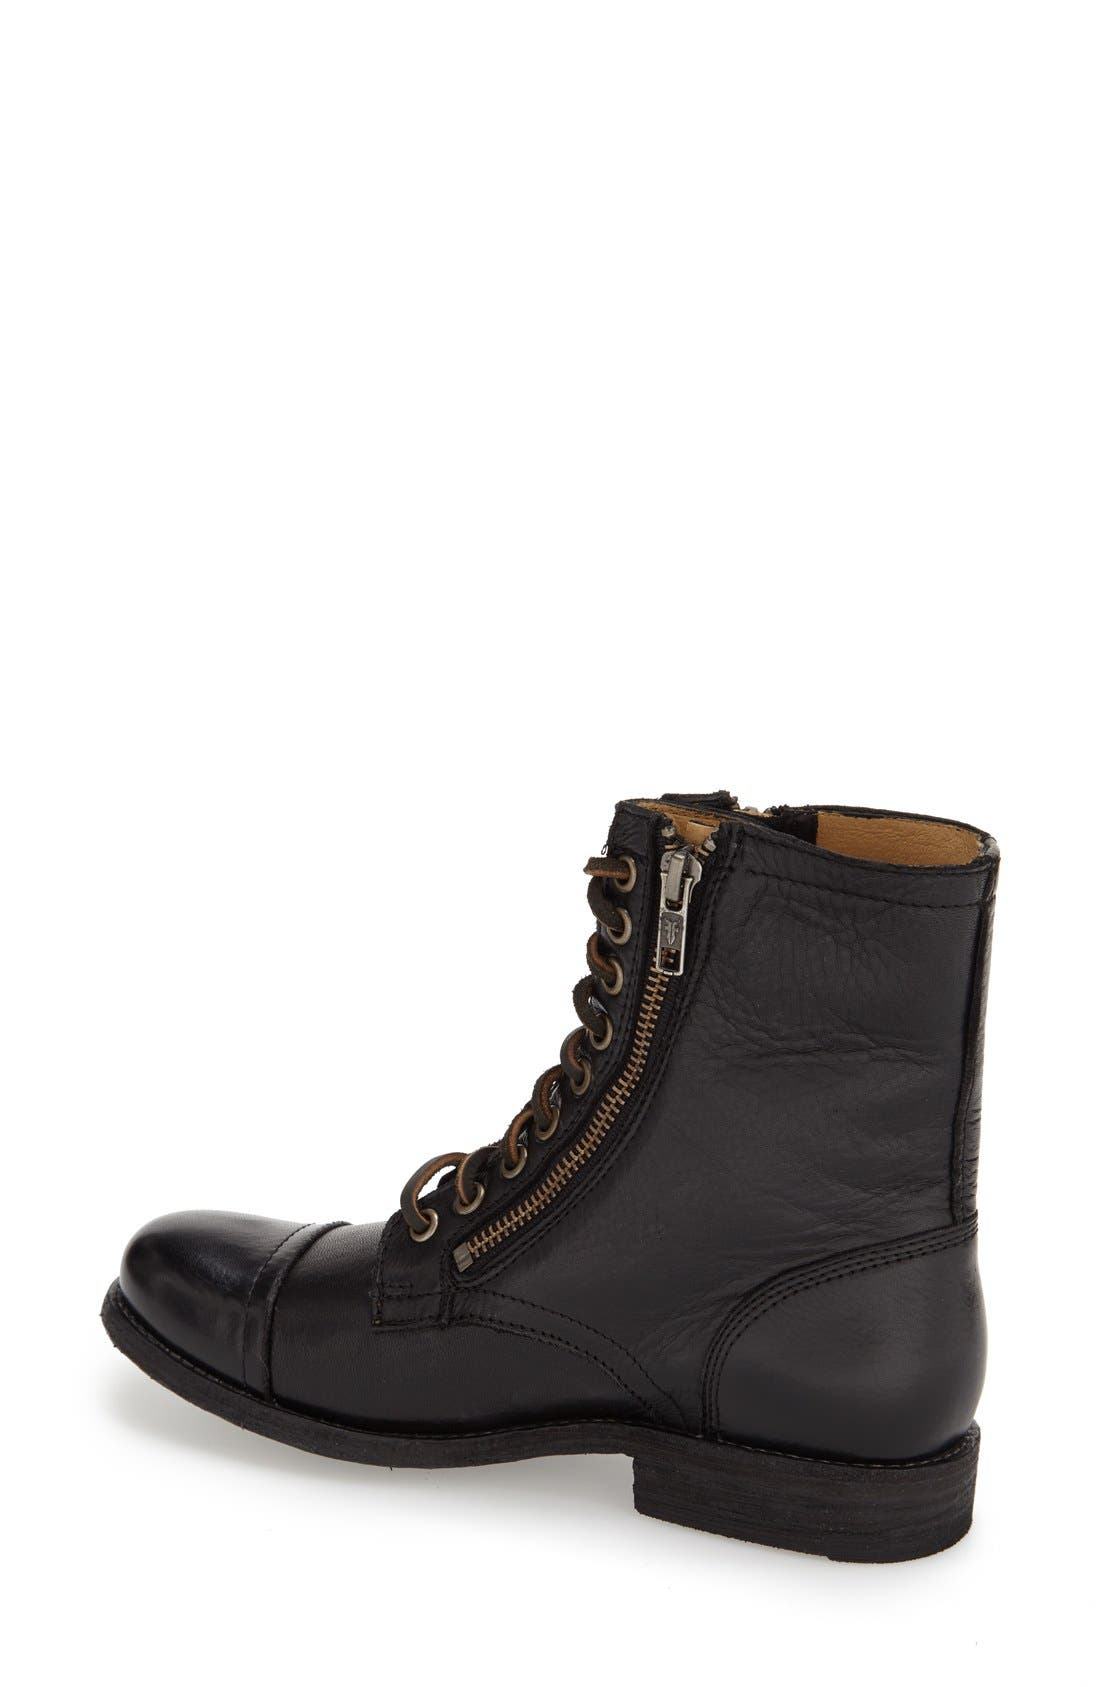 'Tyler' Double Zip Military Boot,                             Alternate thumbnail 2, color,                             001